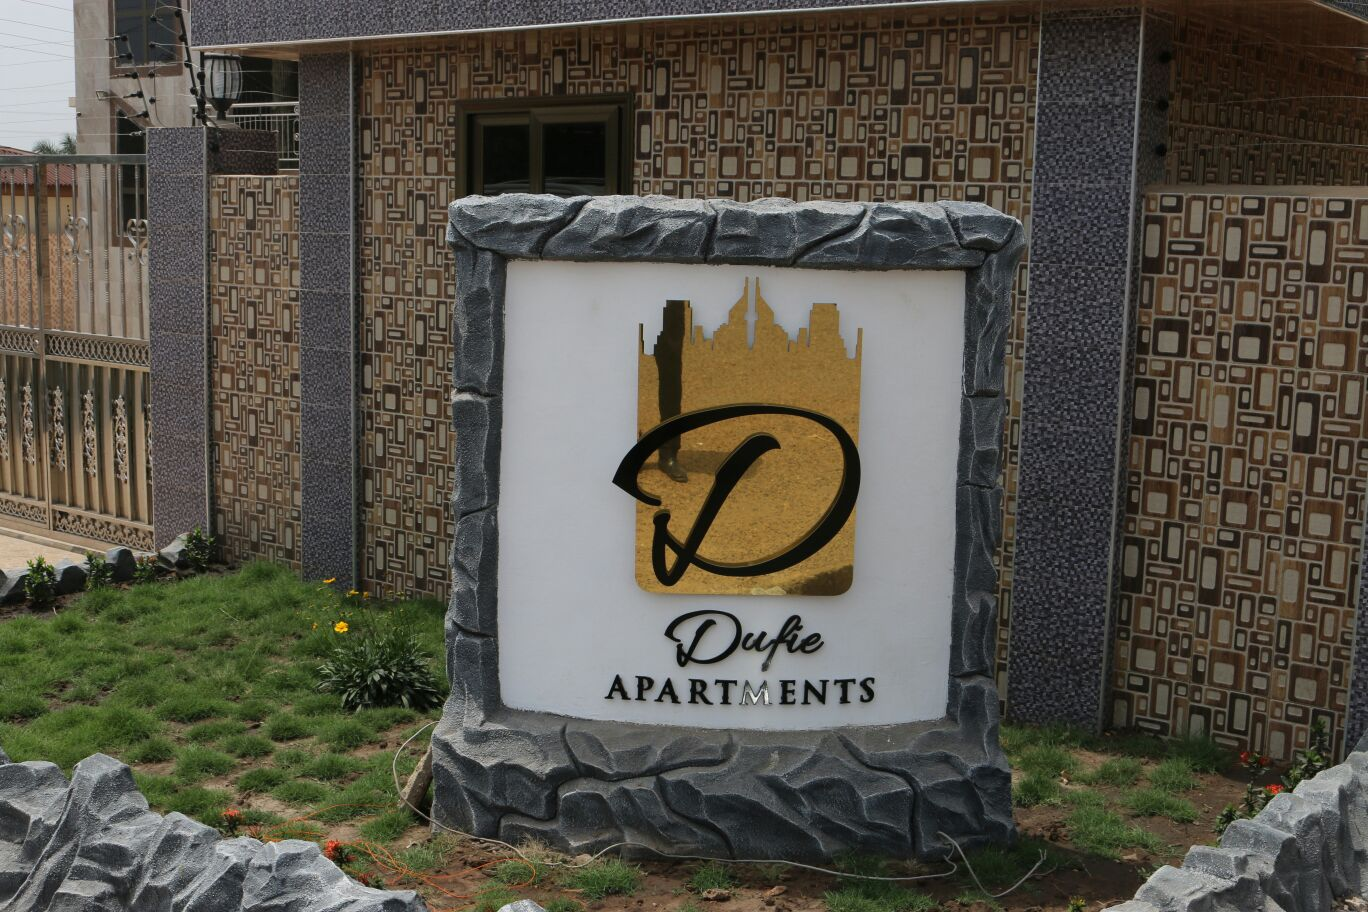 Dufie Apartments